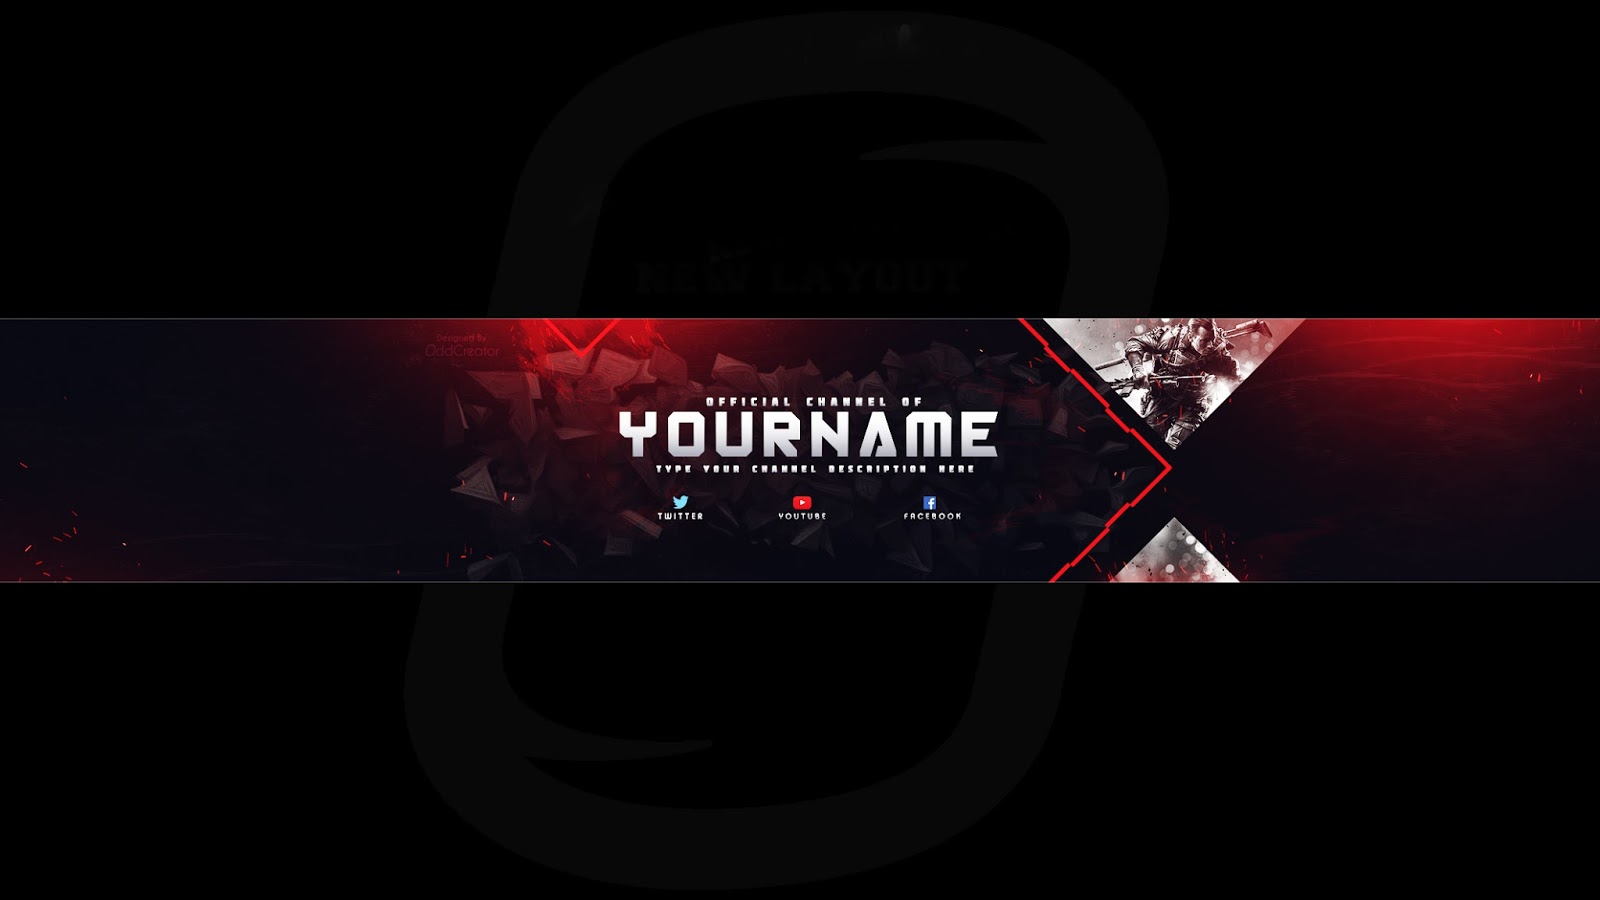 Top gaming banner Youtube Channel Art Photoshop Template free ...